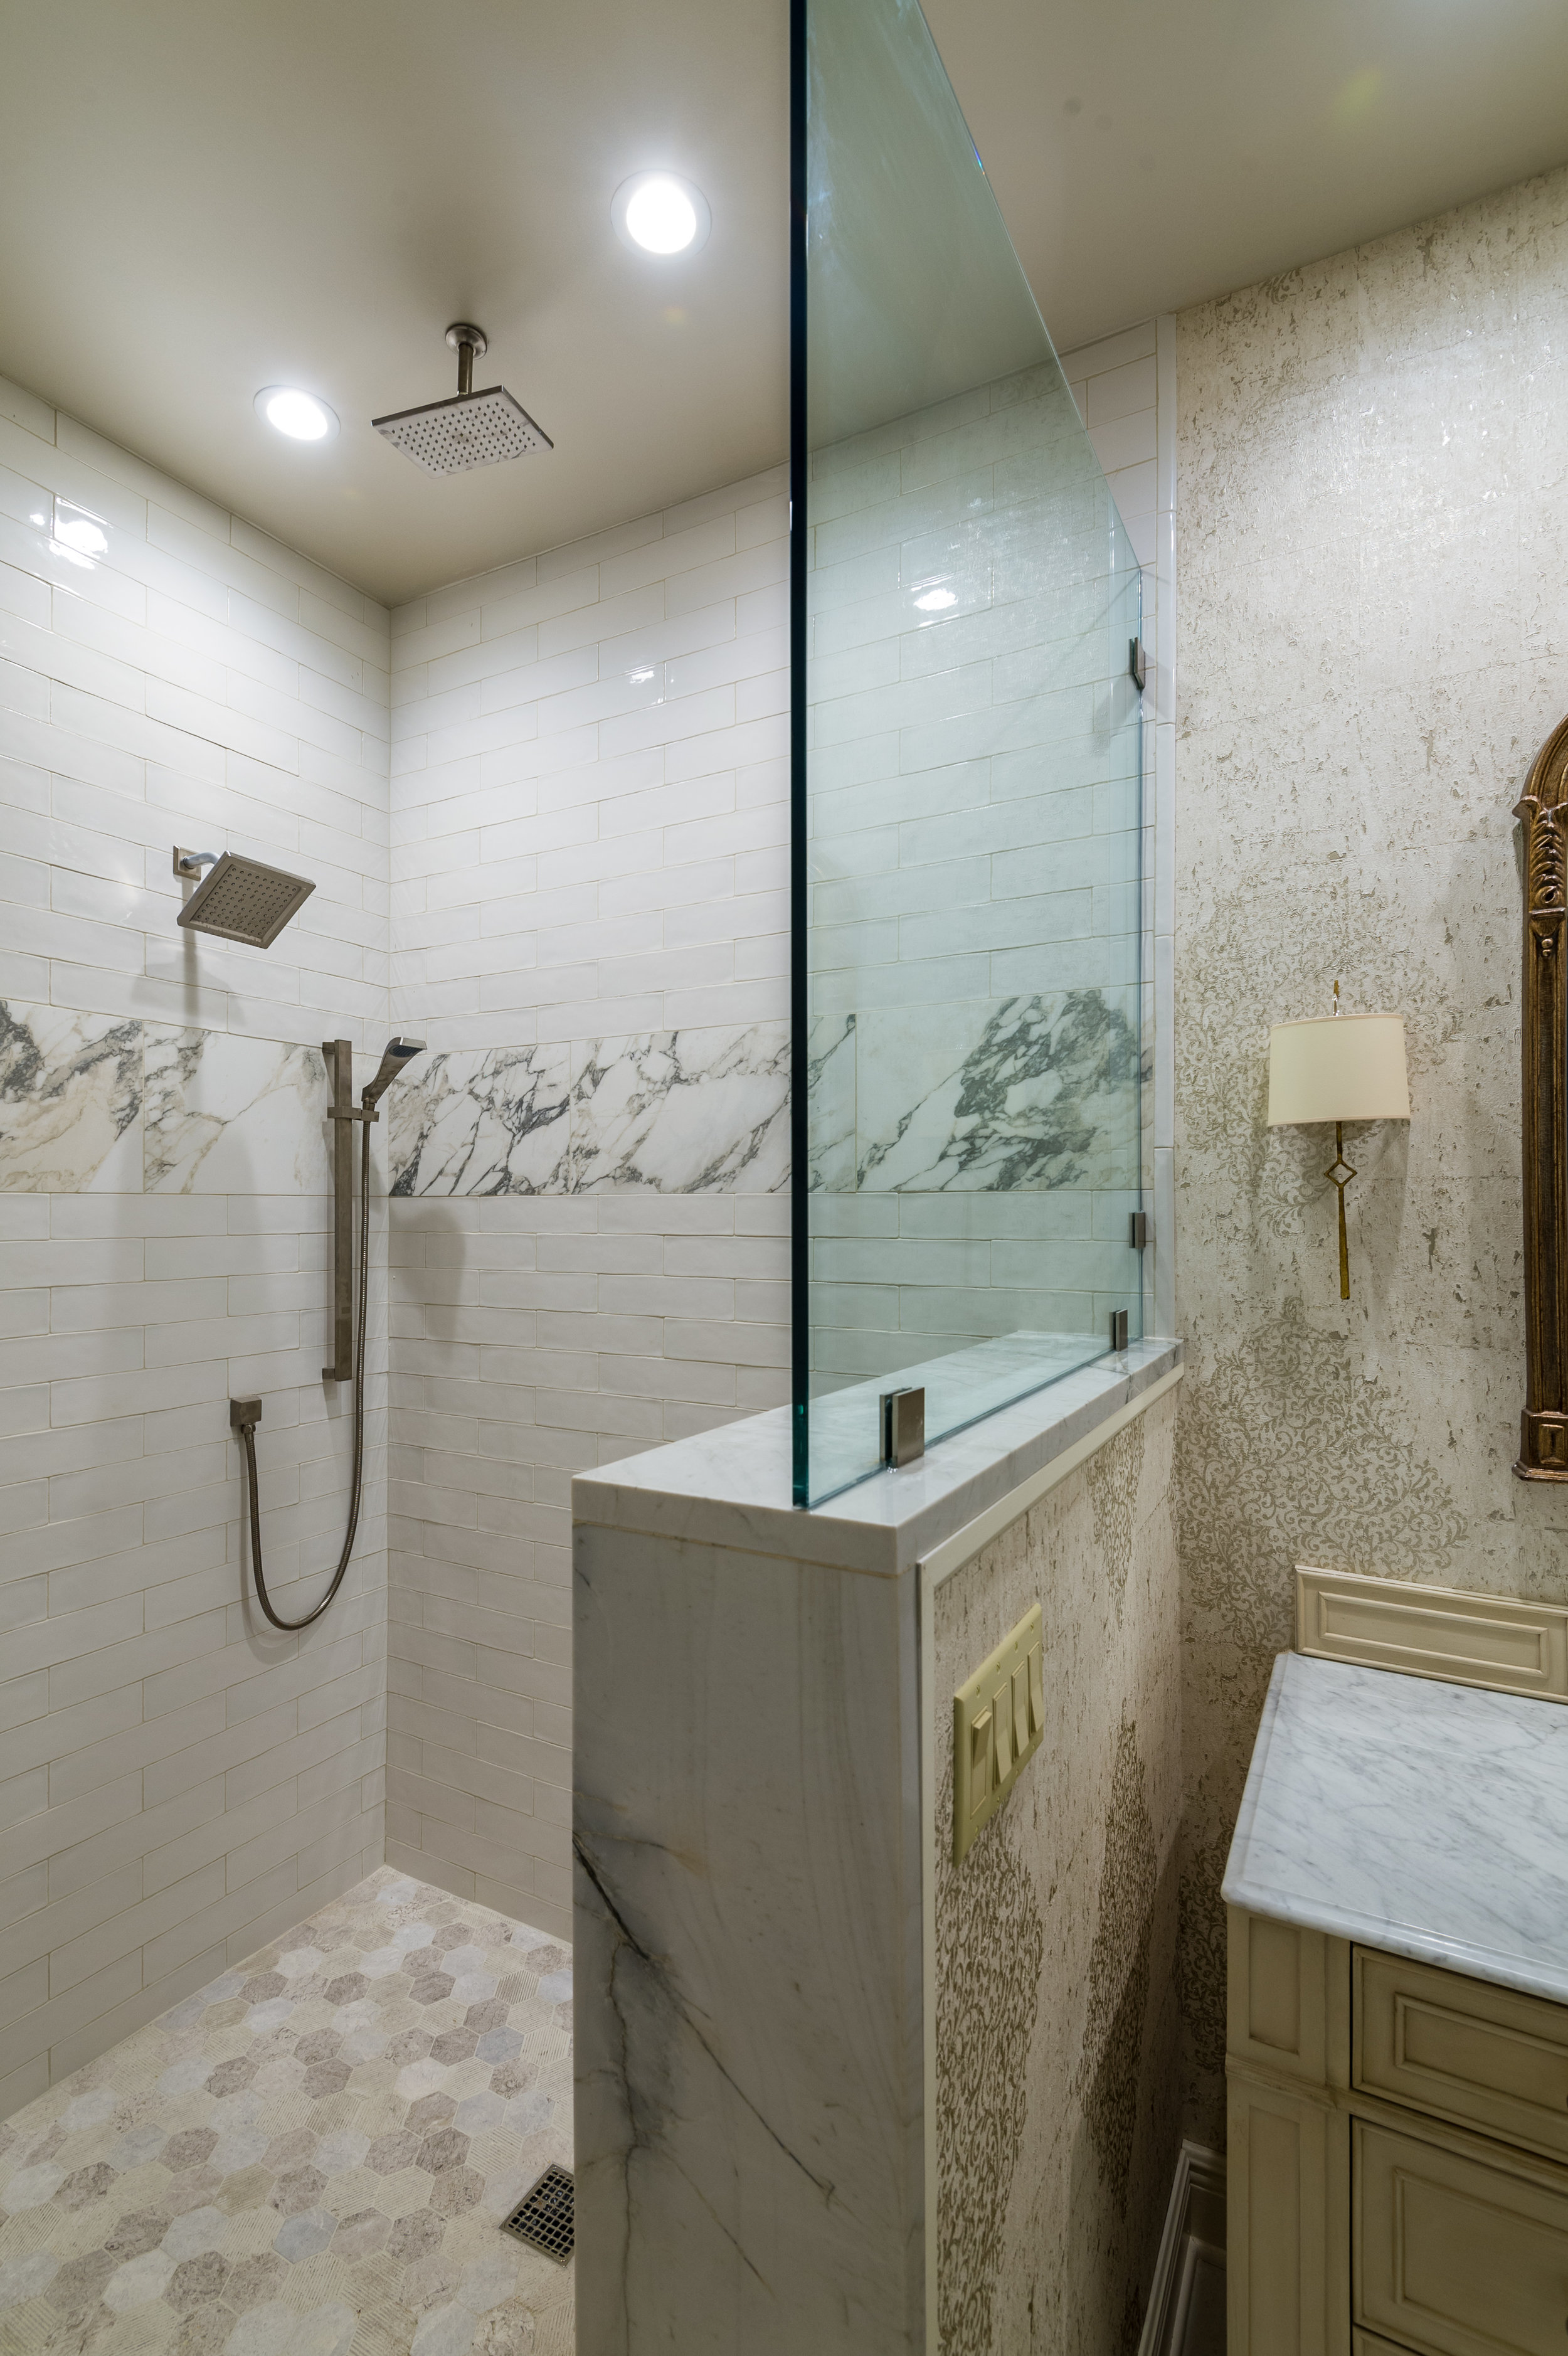 custom bathroom new orleans interior designer old metairie uptown garden district interior designer lakeview new orleans